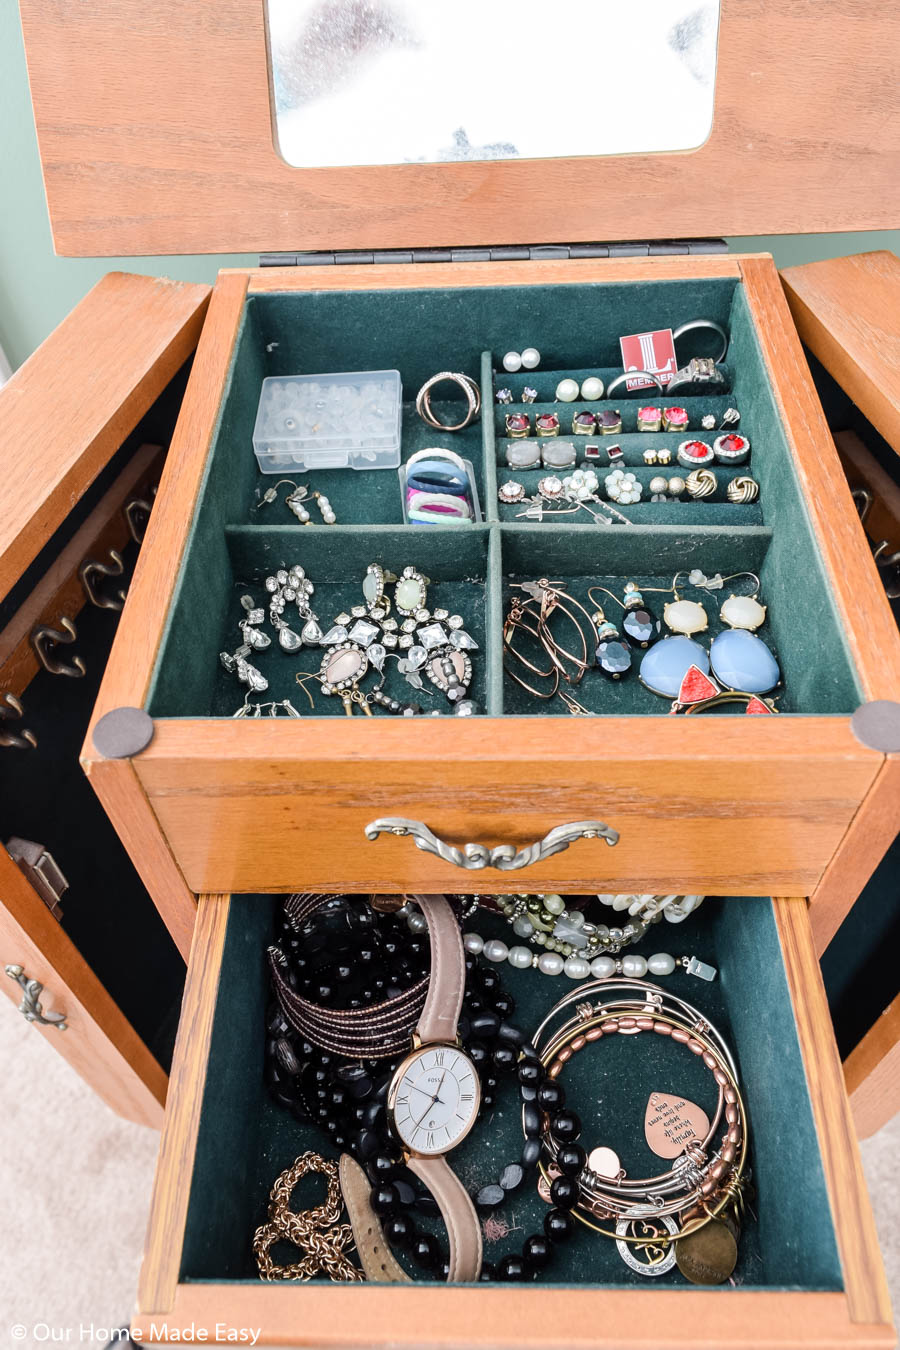 While organizing my jewelry collection, I decided what to keep and what to get rid of